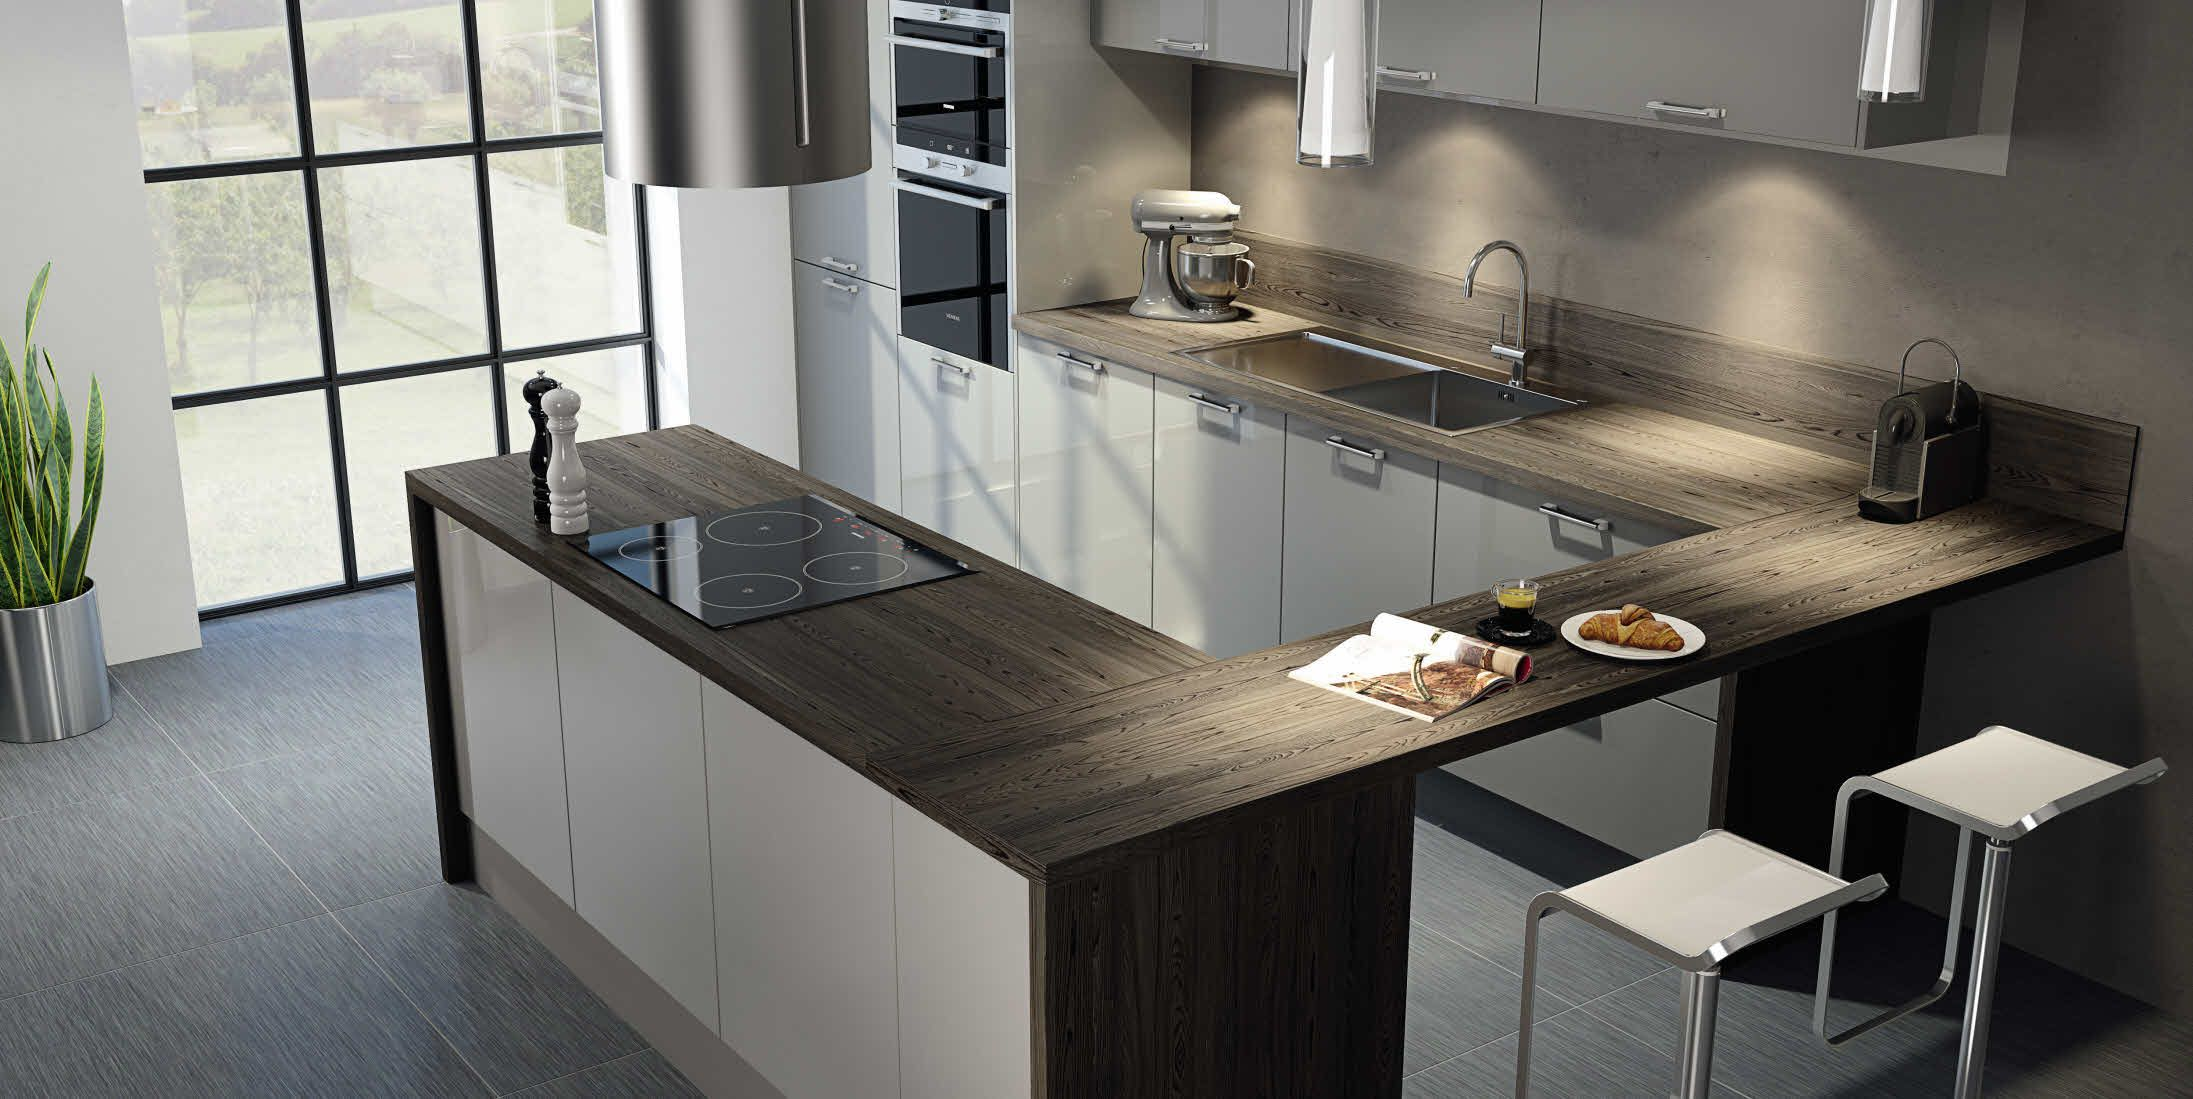 Cuisine hygena mod le city gris brillant cuisines - Cuisine contemporaine bois enpropositions de design moderne ...